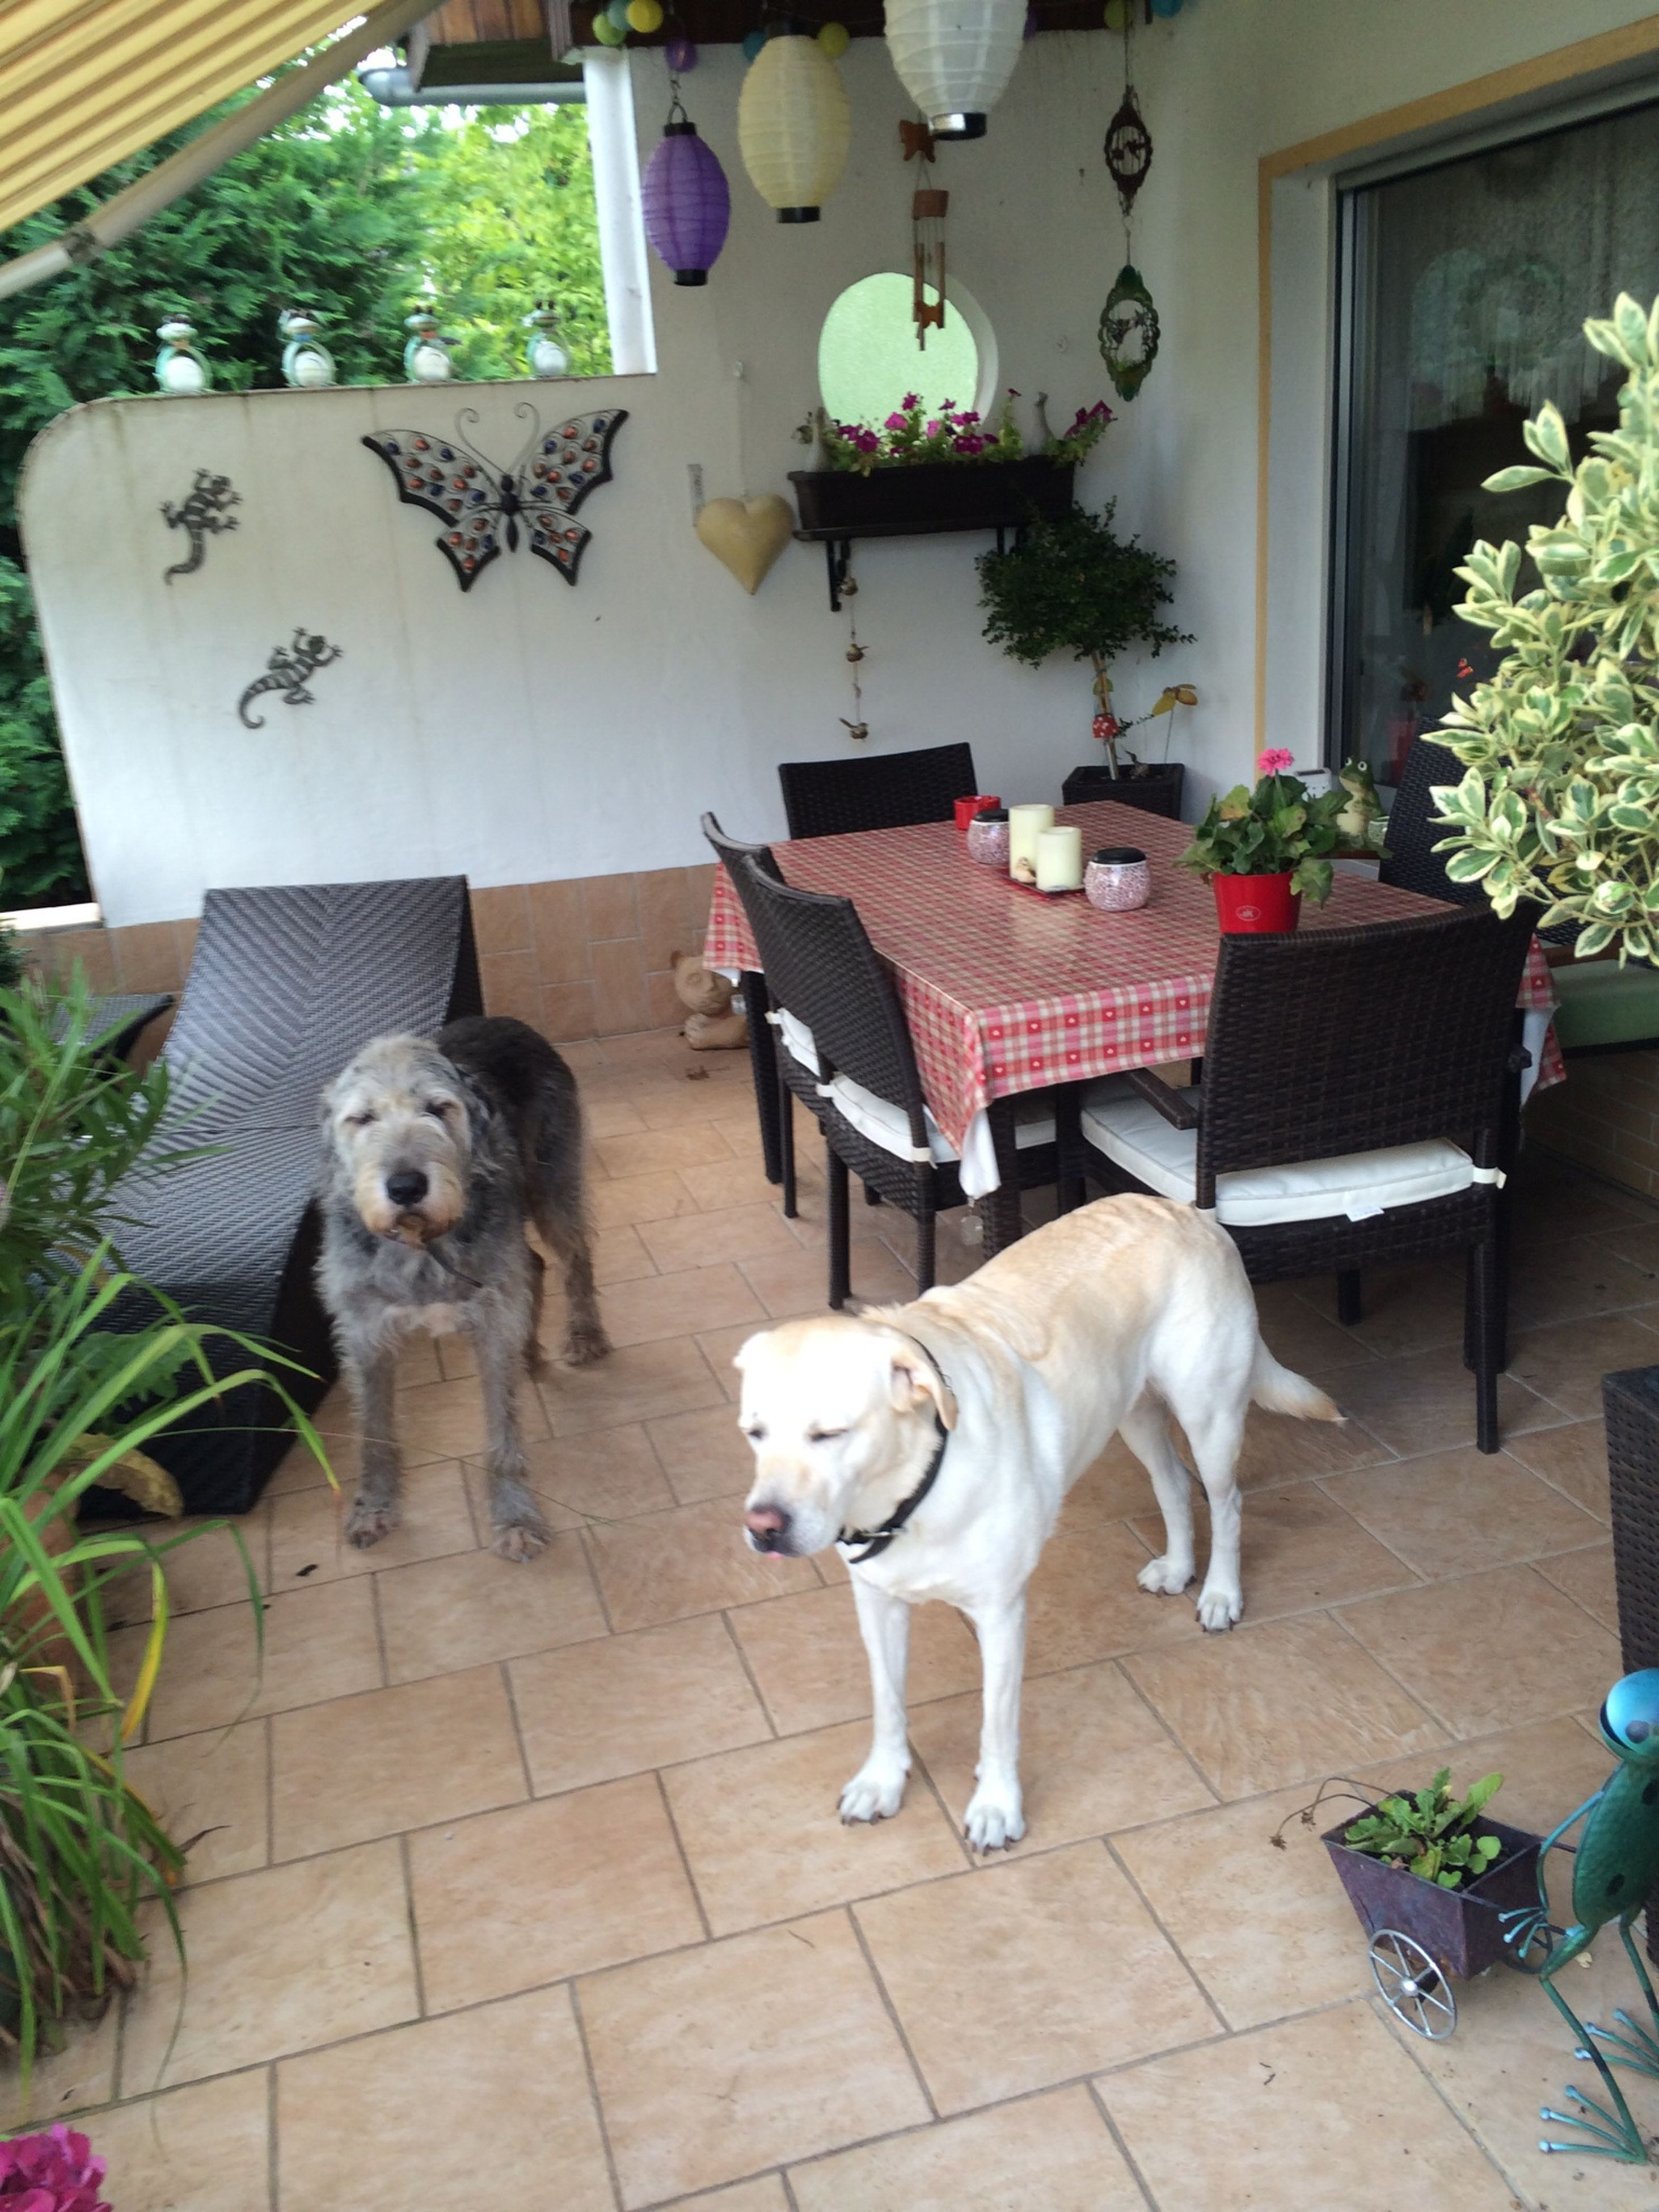 domestic animals, pets, animal themes, mammal, one animal, dog, built structure, building exterior, full length, architecture, sitting, relaxation, potted plant, two animals, looking at camera, no people, house, portrait, day, tiled floor